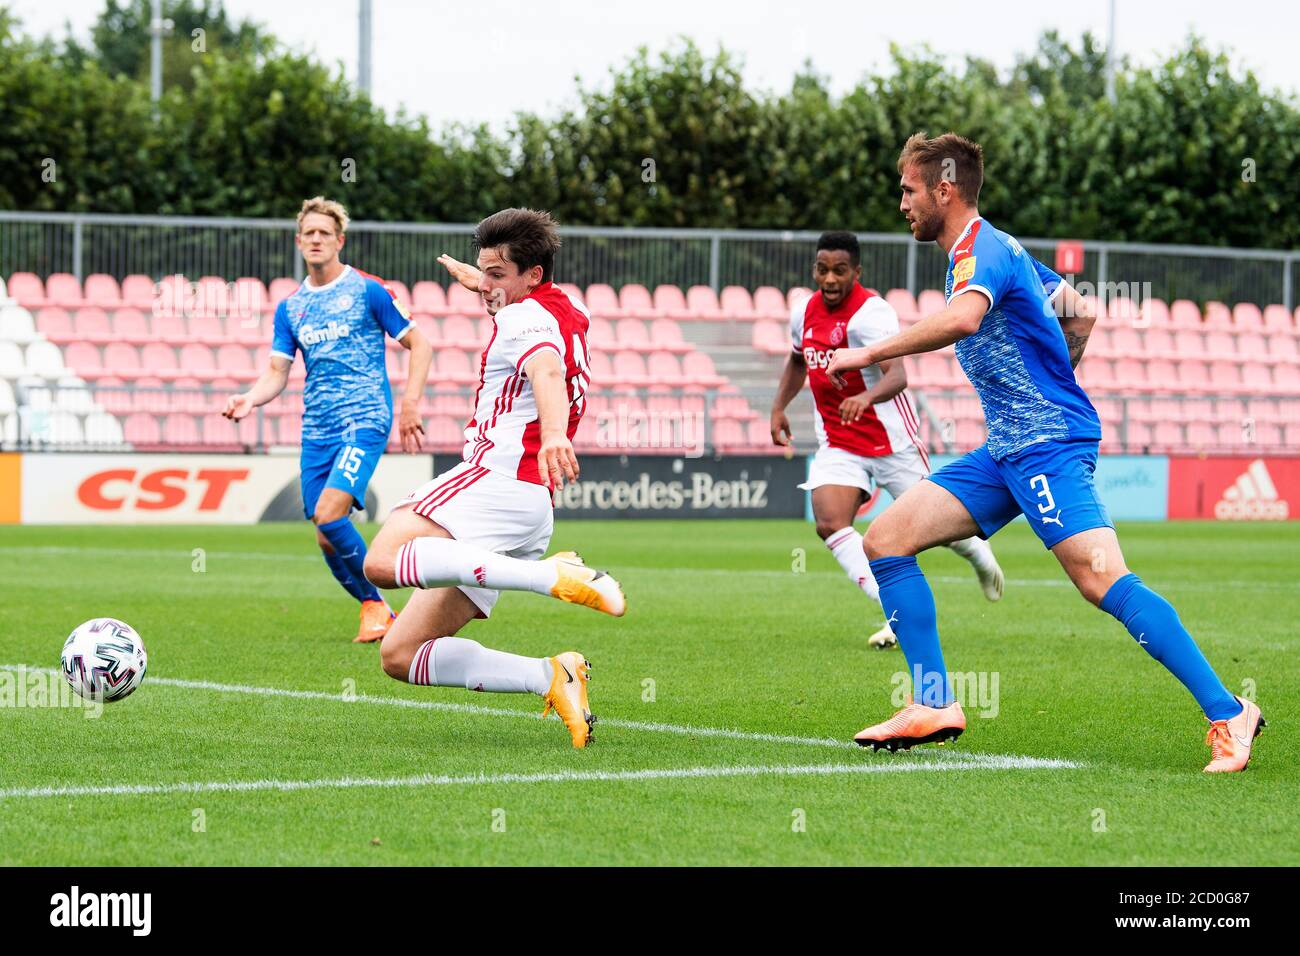 Amsterdam Netherlands 25th Aug 2020 Amsterdam 25 08 2020 Sportpark De Toekomst Football Friendly Testmatch Season